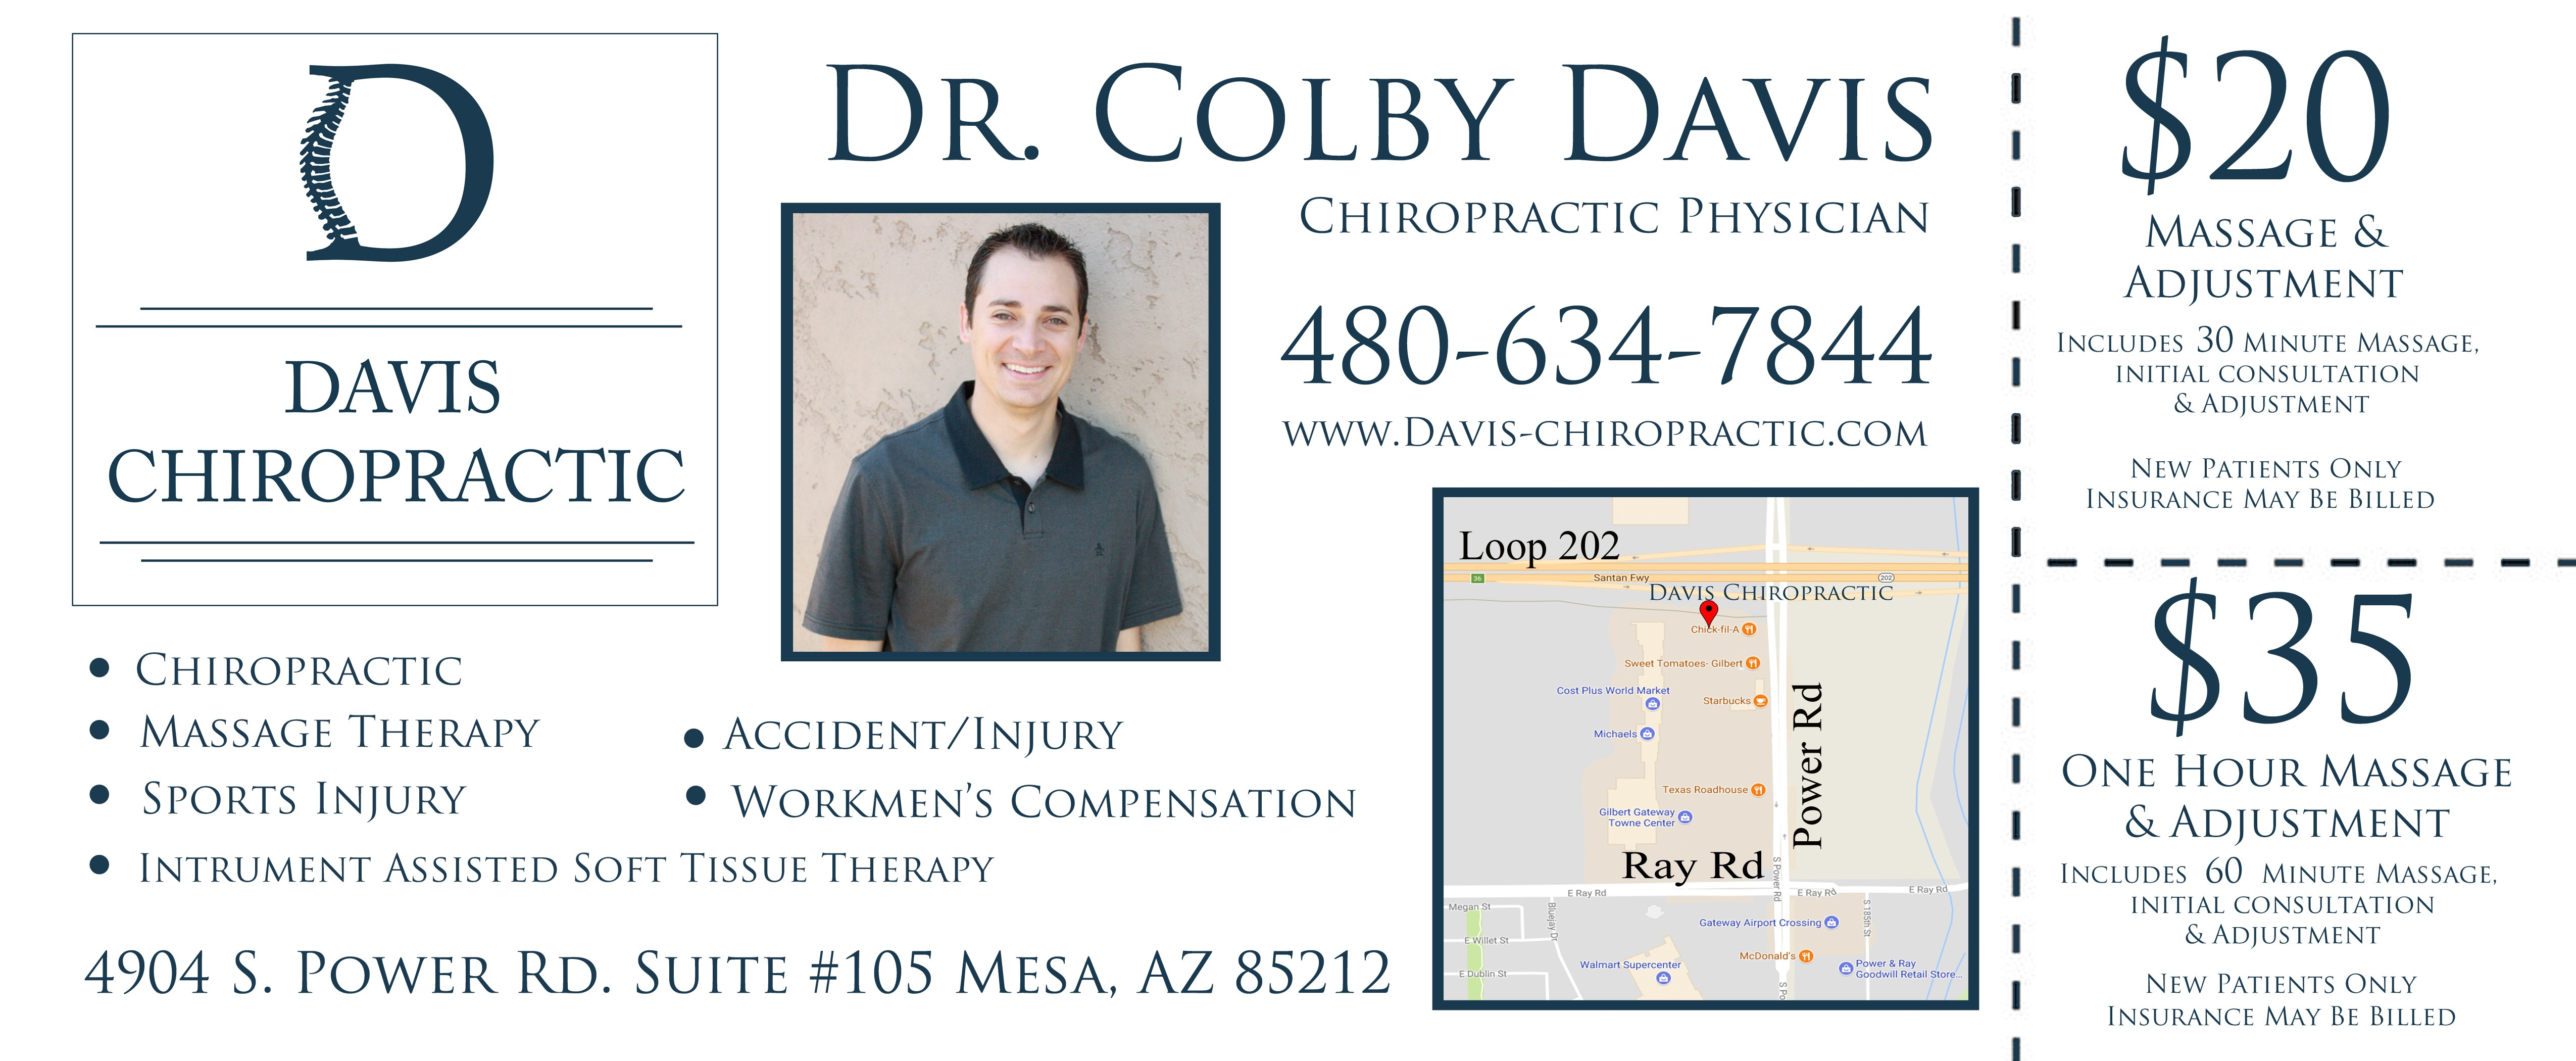 Davis Chiropractic Coupon